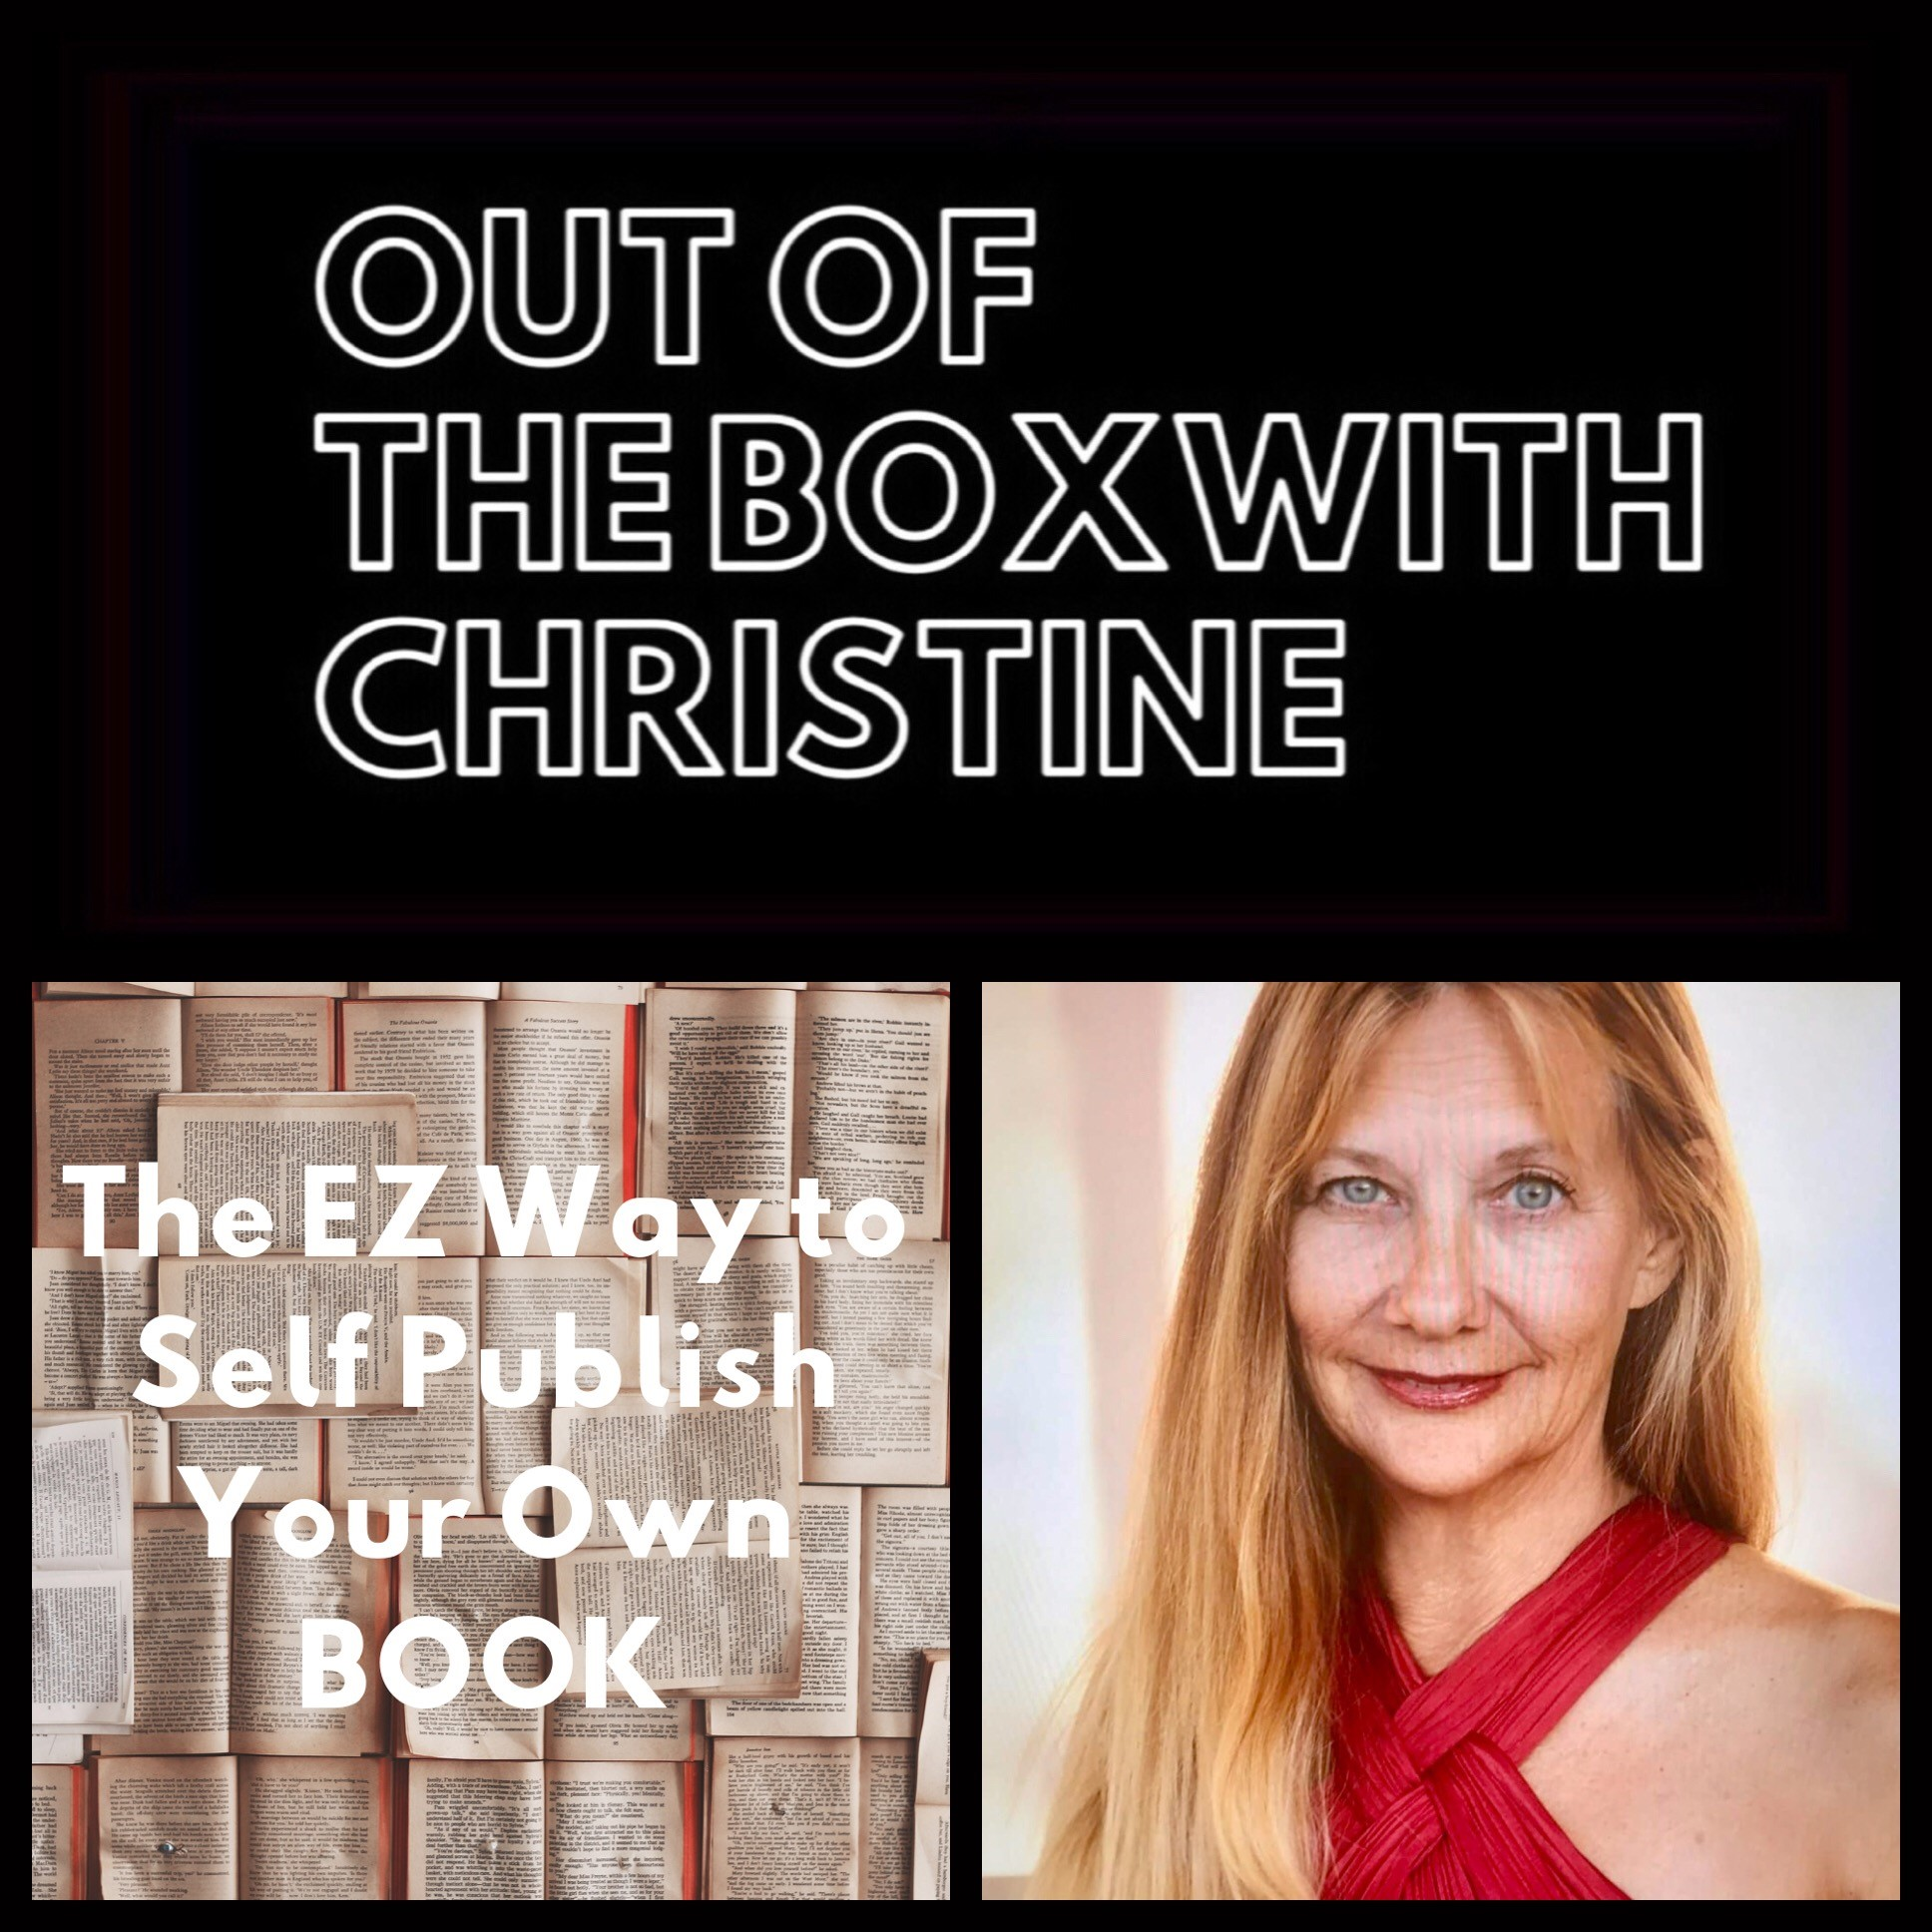 CLICK HERE TO HEAR MY INTERVIEW WITH DEBORAH S NELSON        CLICK HERE TO GET YOUR DIY SELF PUBLISHING PACKAGE AT 50% OFF